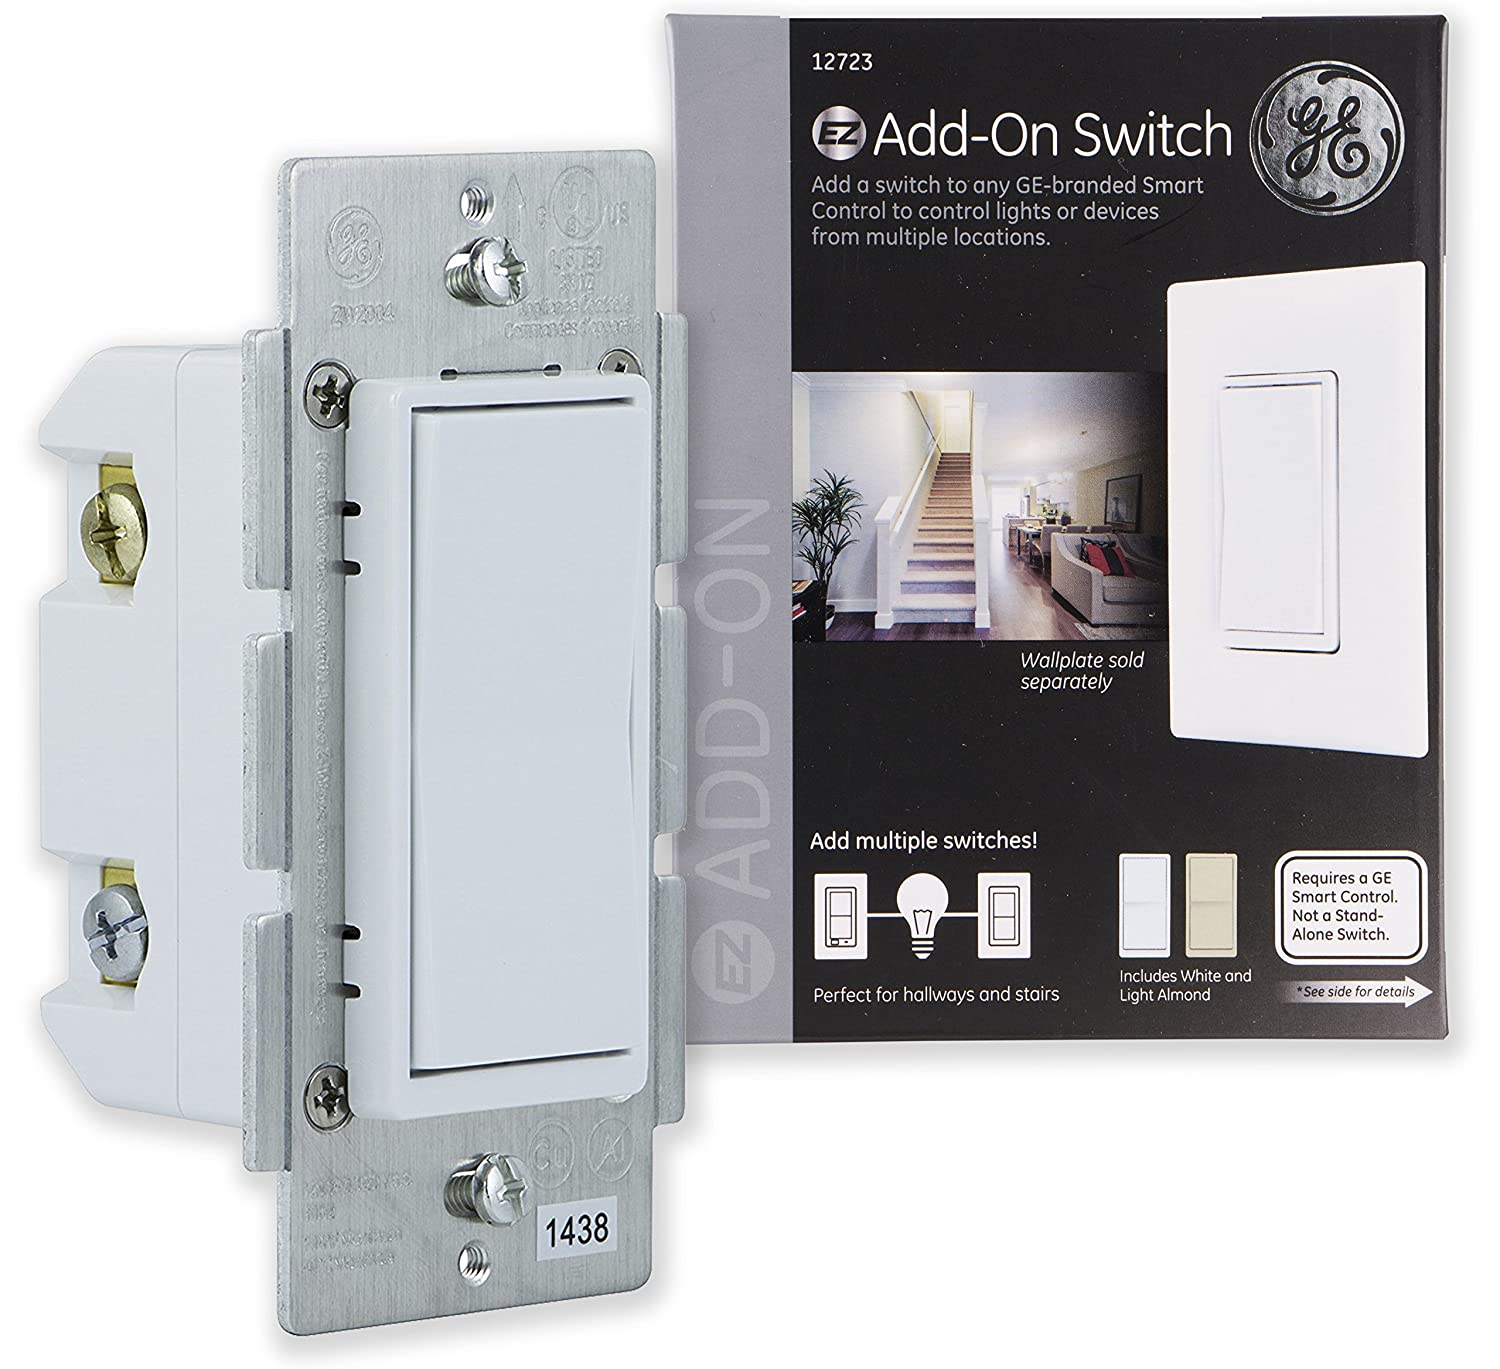 Way Switching And Neutral As Well Ge Add On Switch Only For Z Wave Zigbee Bluetooth Wireless Smart Lighting Controls Not A Standalone Incl White Light Almond